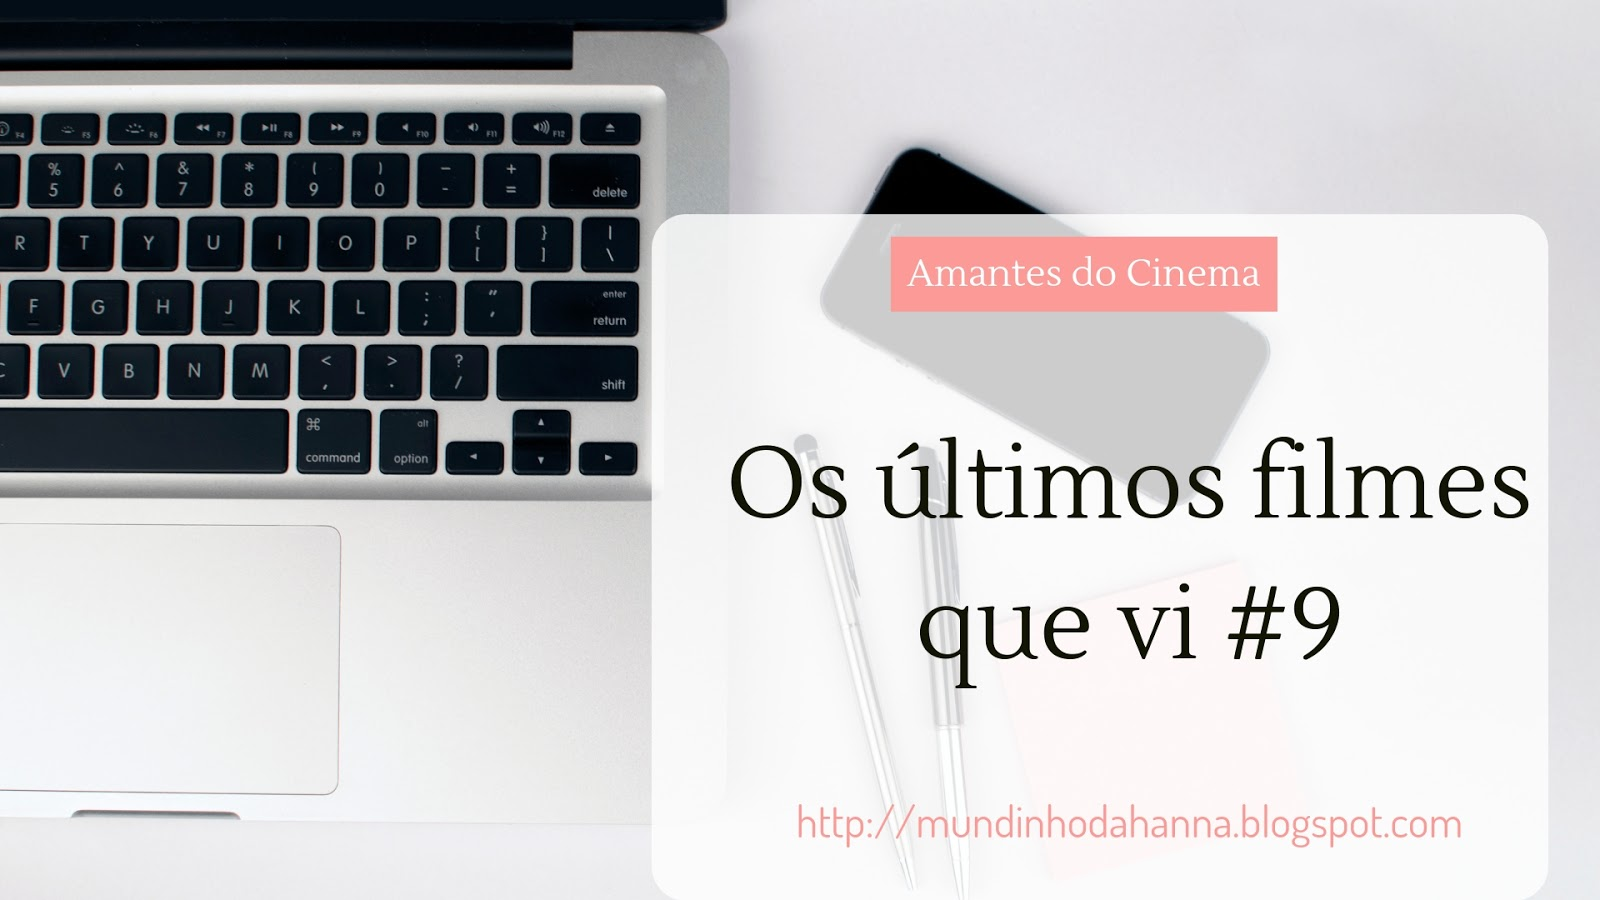 Amantes do cinema